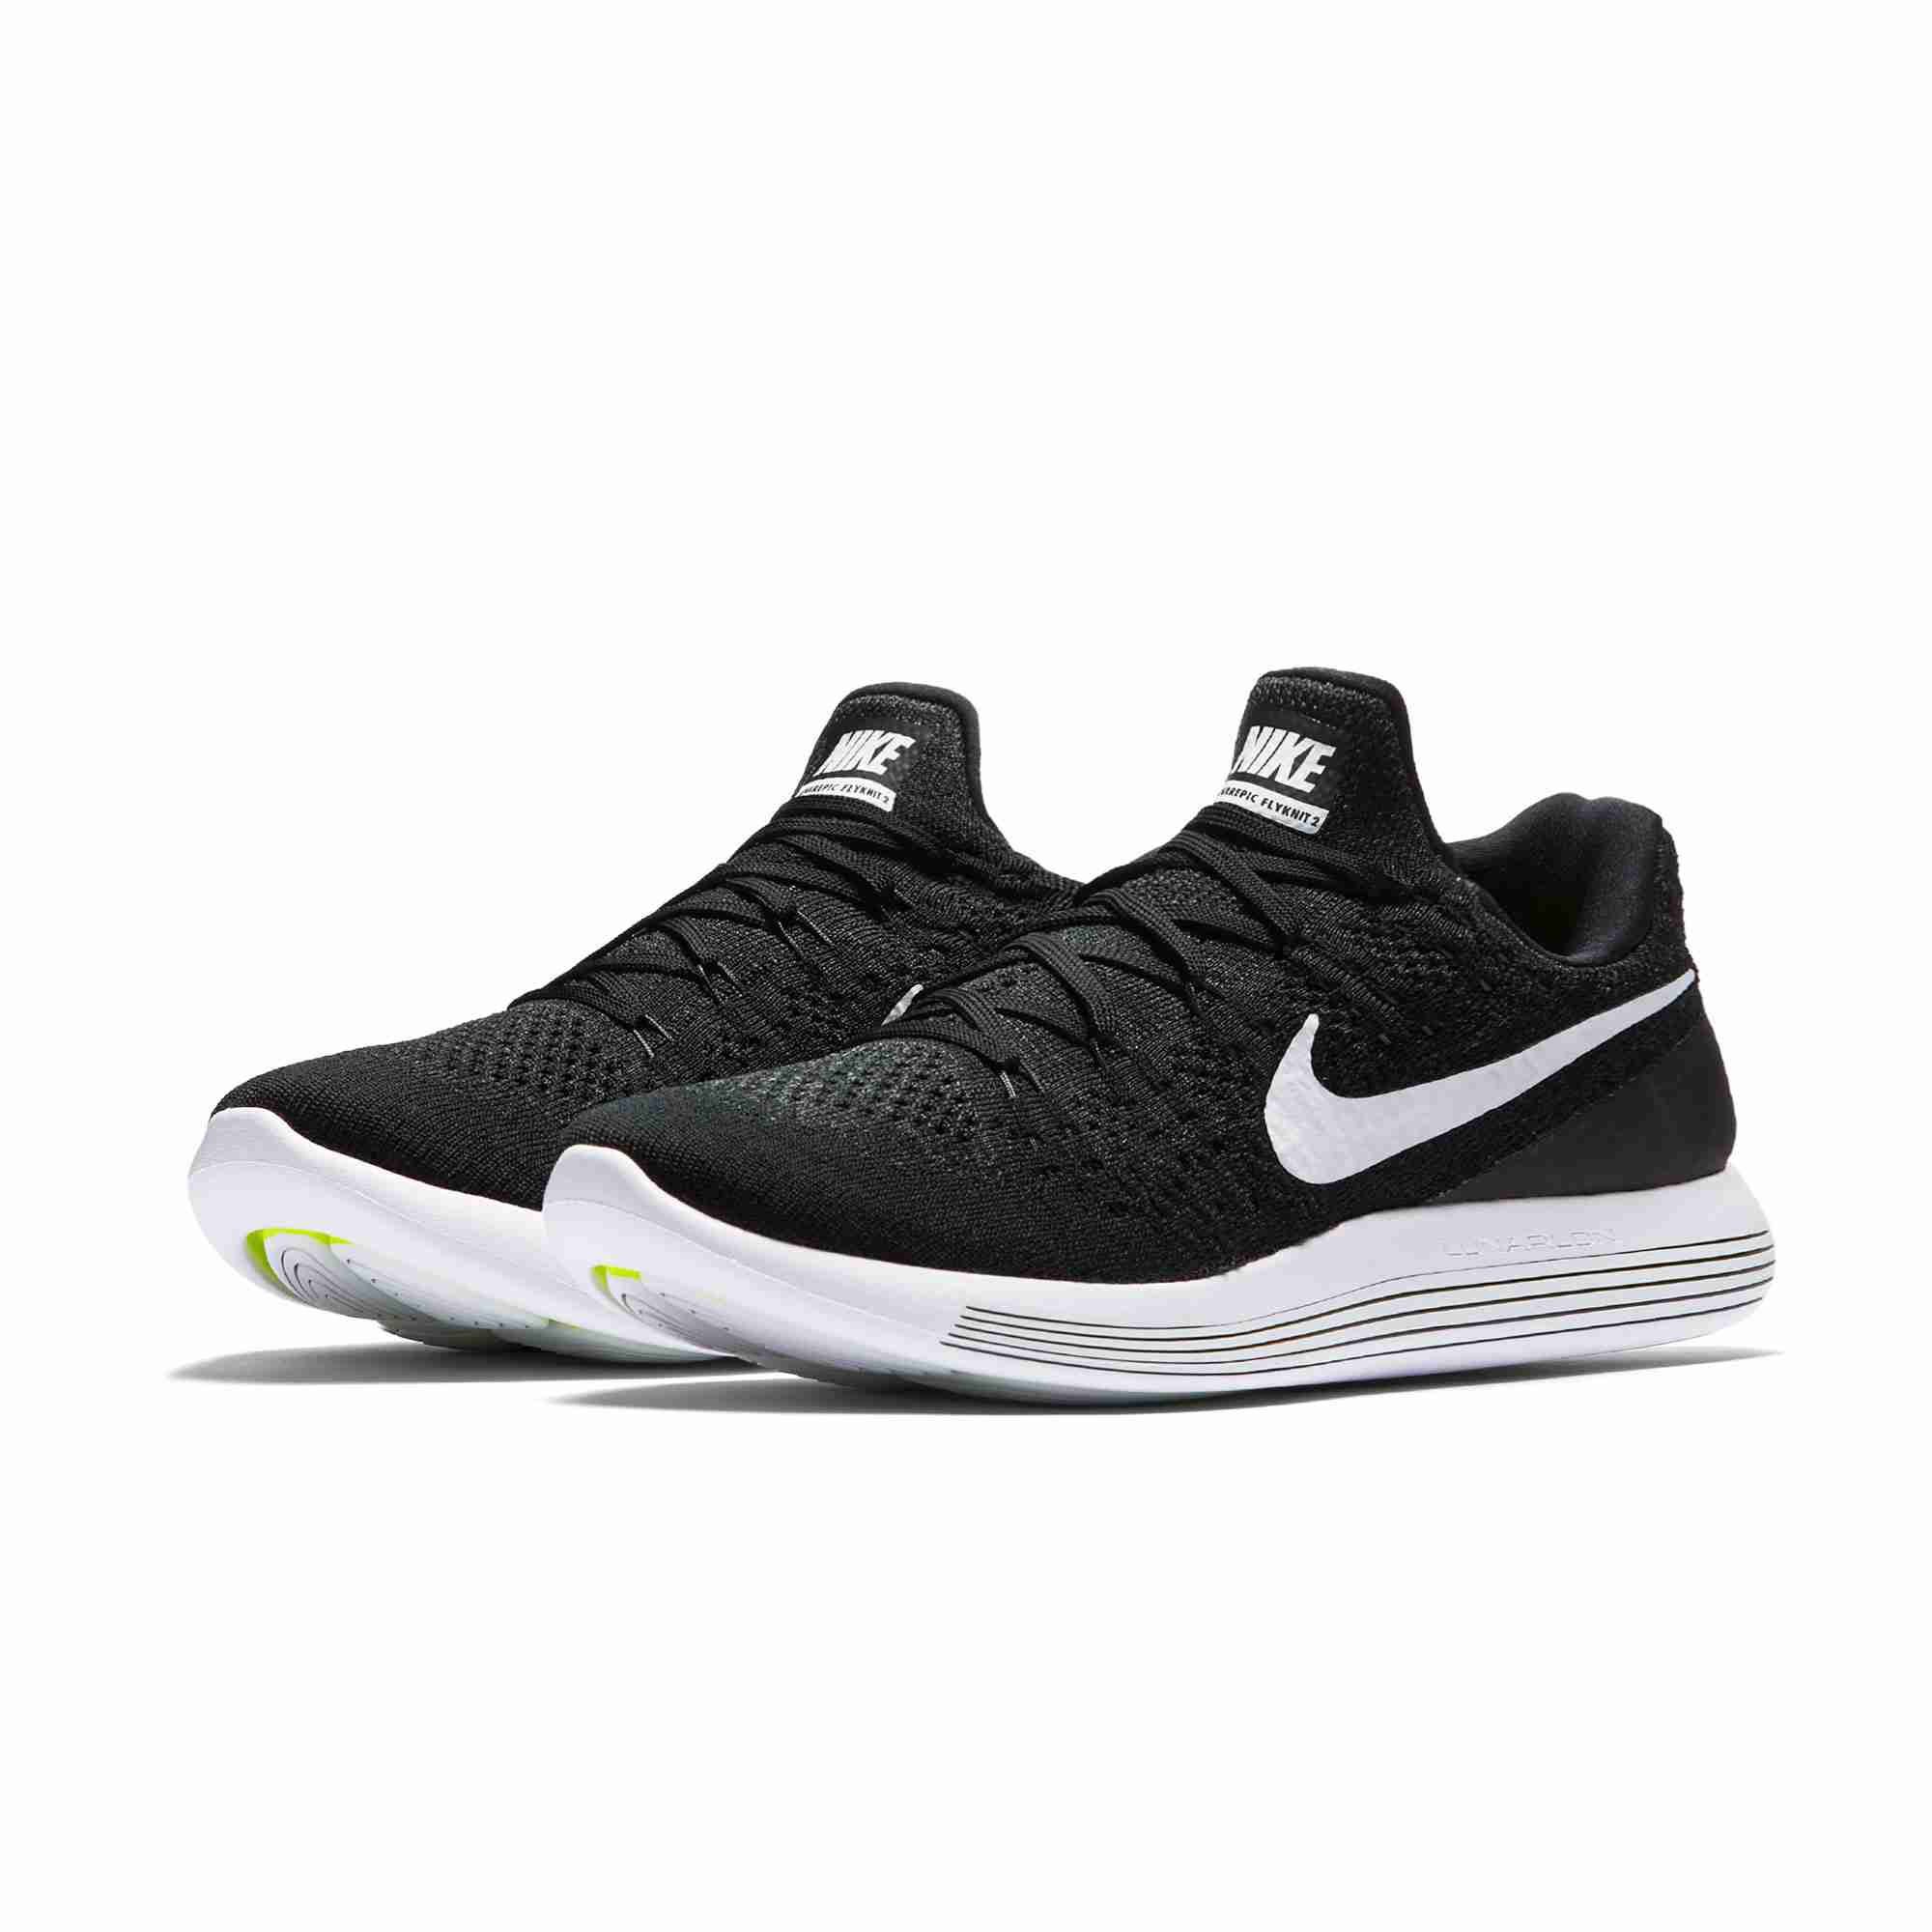 low priced 9e9ab 5e77c ... switzerland original new arrival authentic nike lunarepic low flyknit 2  mens running shoes 863779 walking jogging